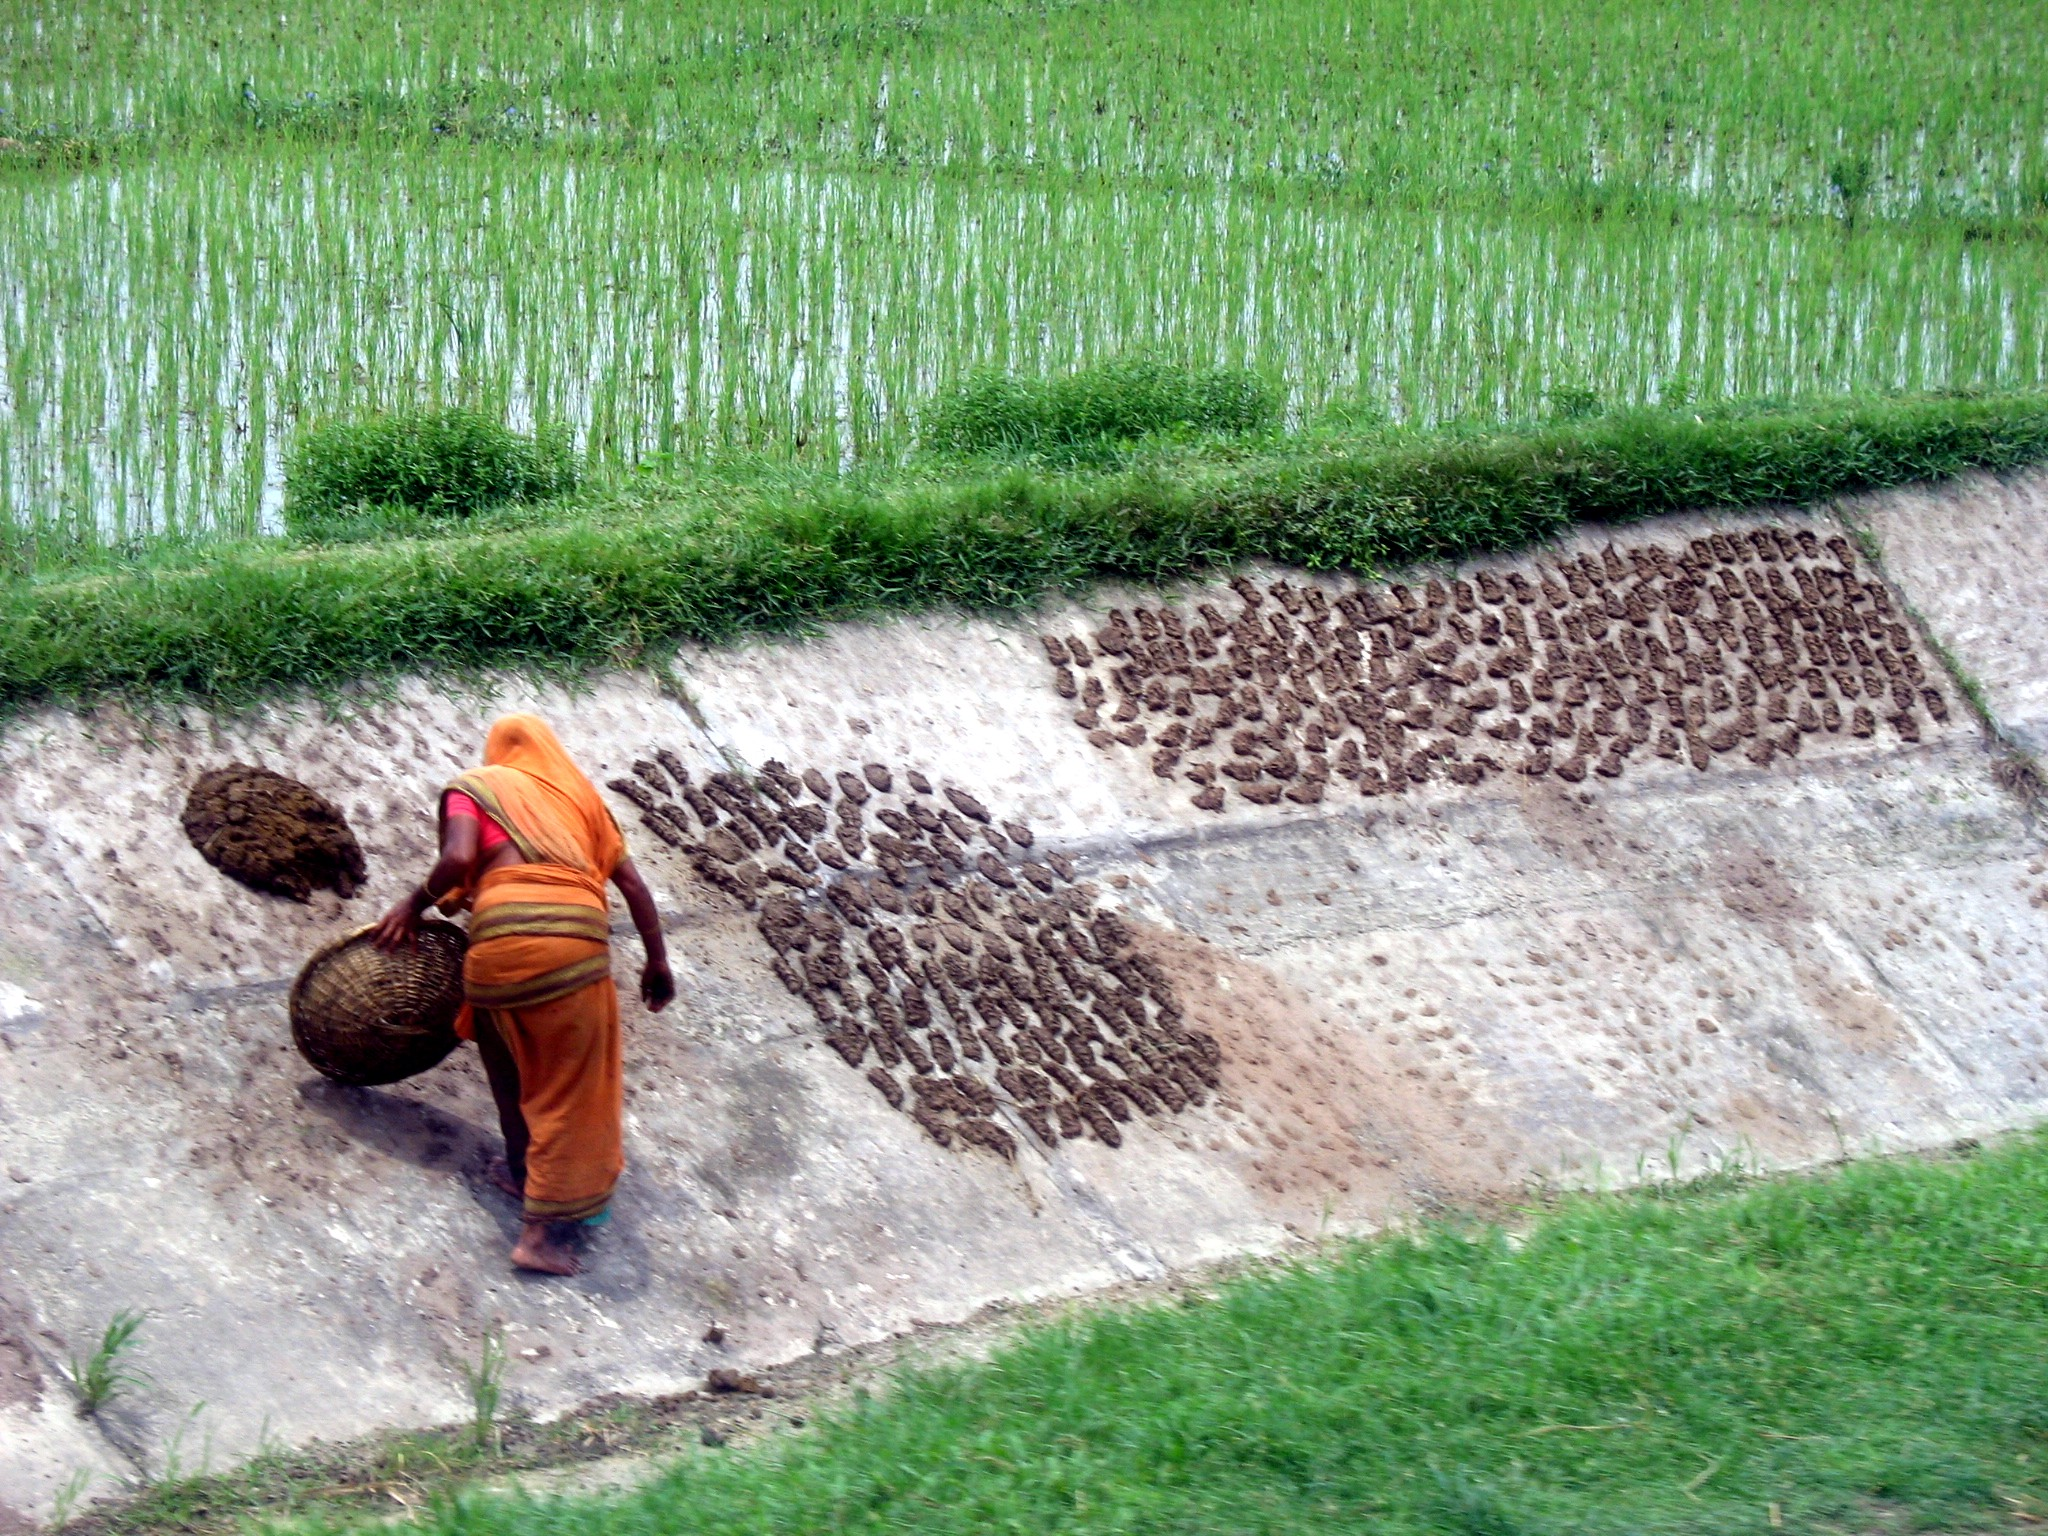 A woman at work in the fields